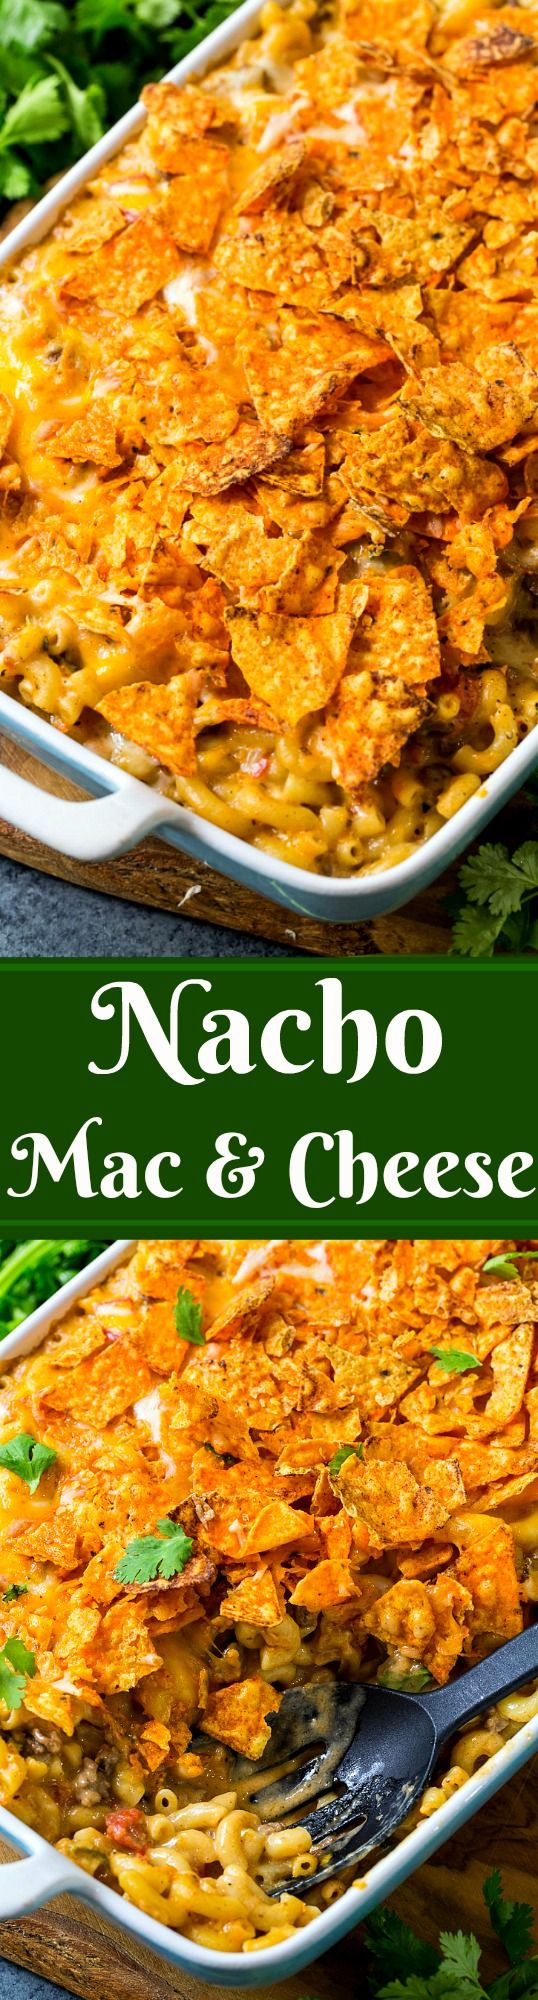 Nacho Mac & Cheese with ground beef and crushed Doritos on top.